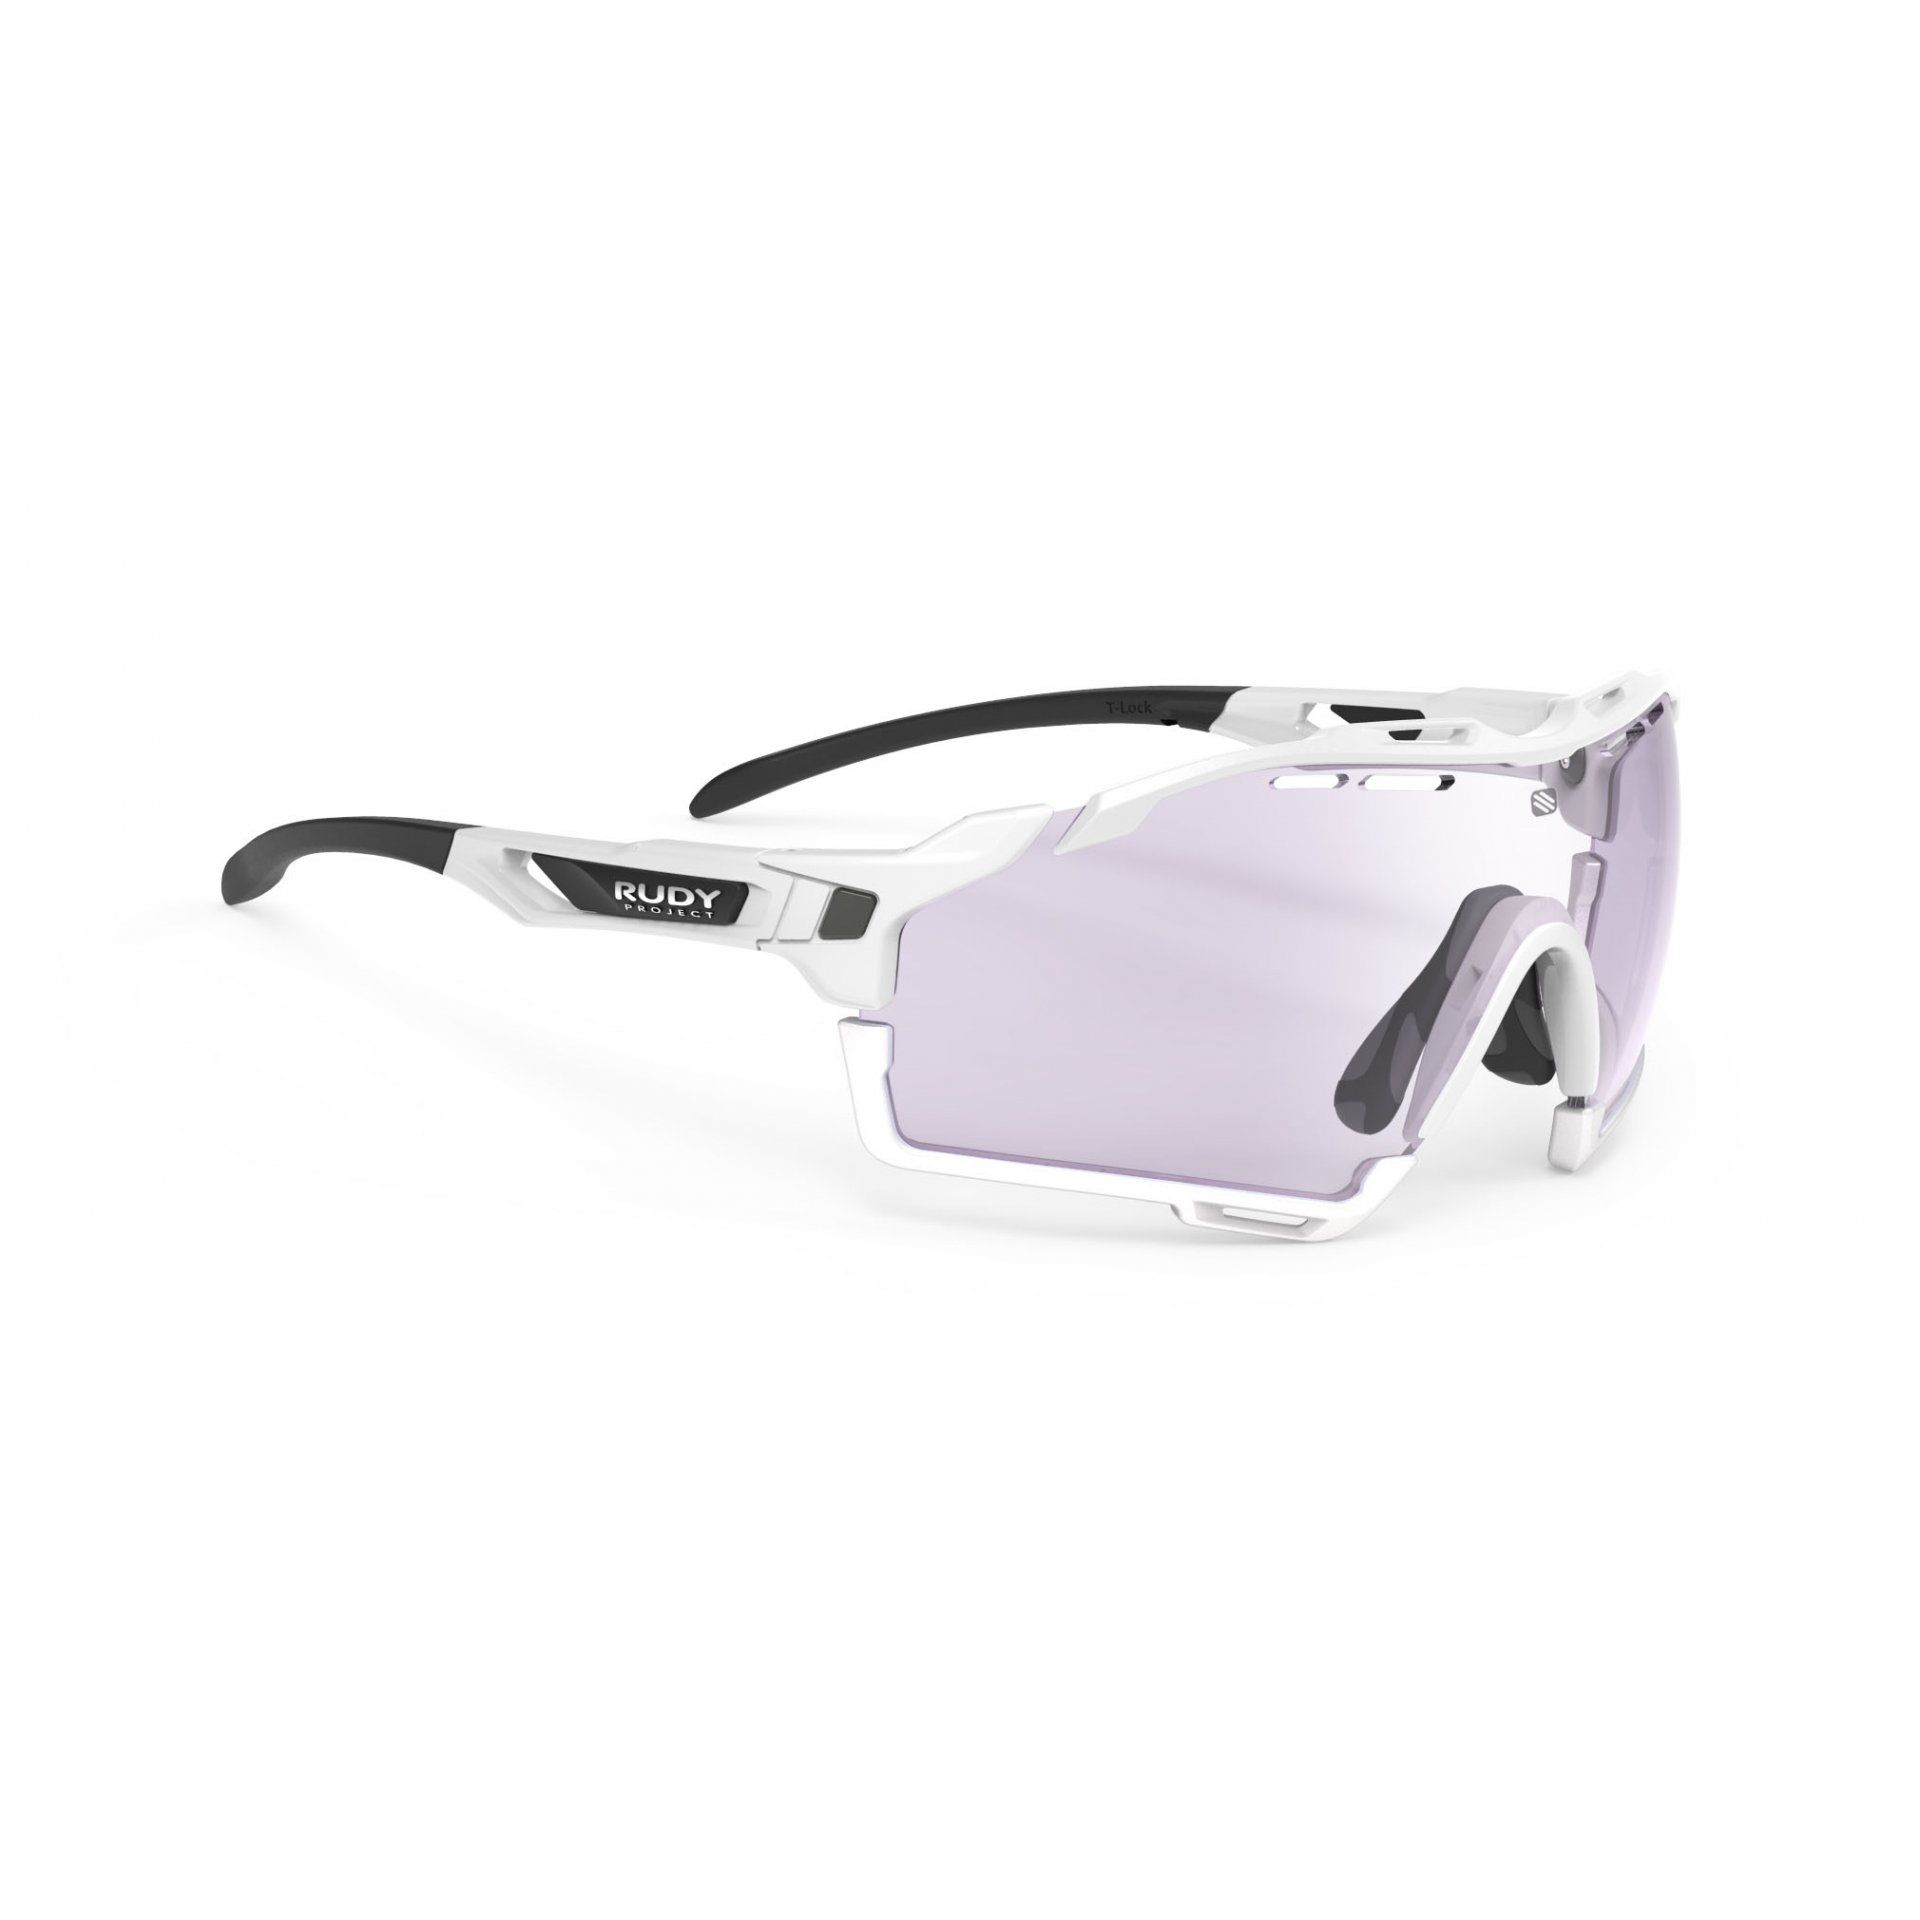 OKULARY RUDY PROJECT CUTLINE WHITE GLOSS+PHOTOCHROMIC LASER PURPLE 1